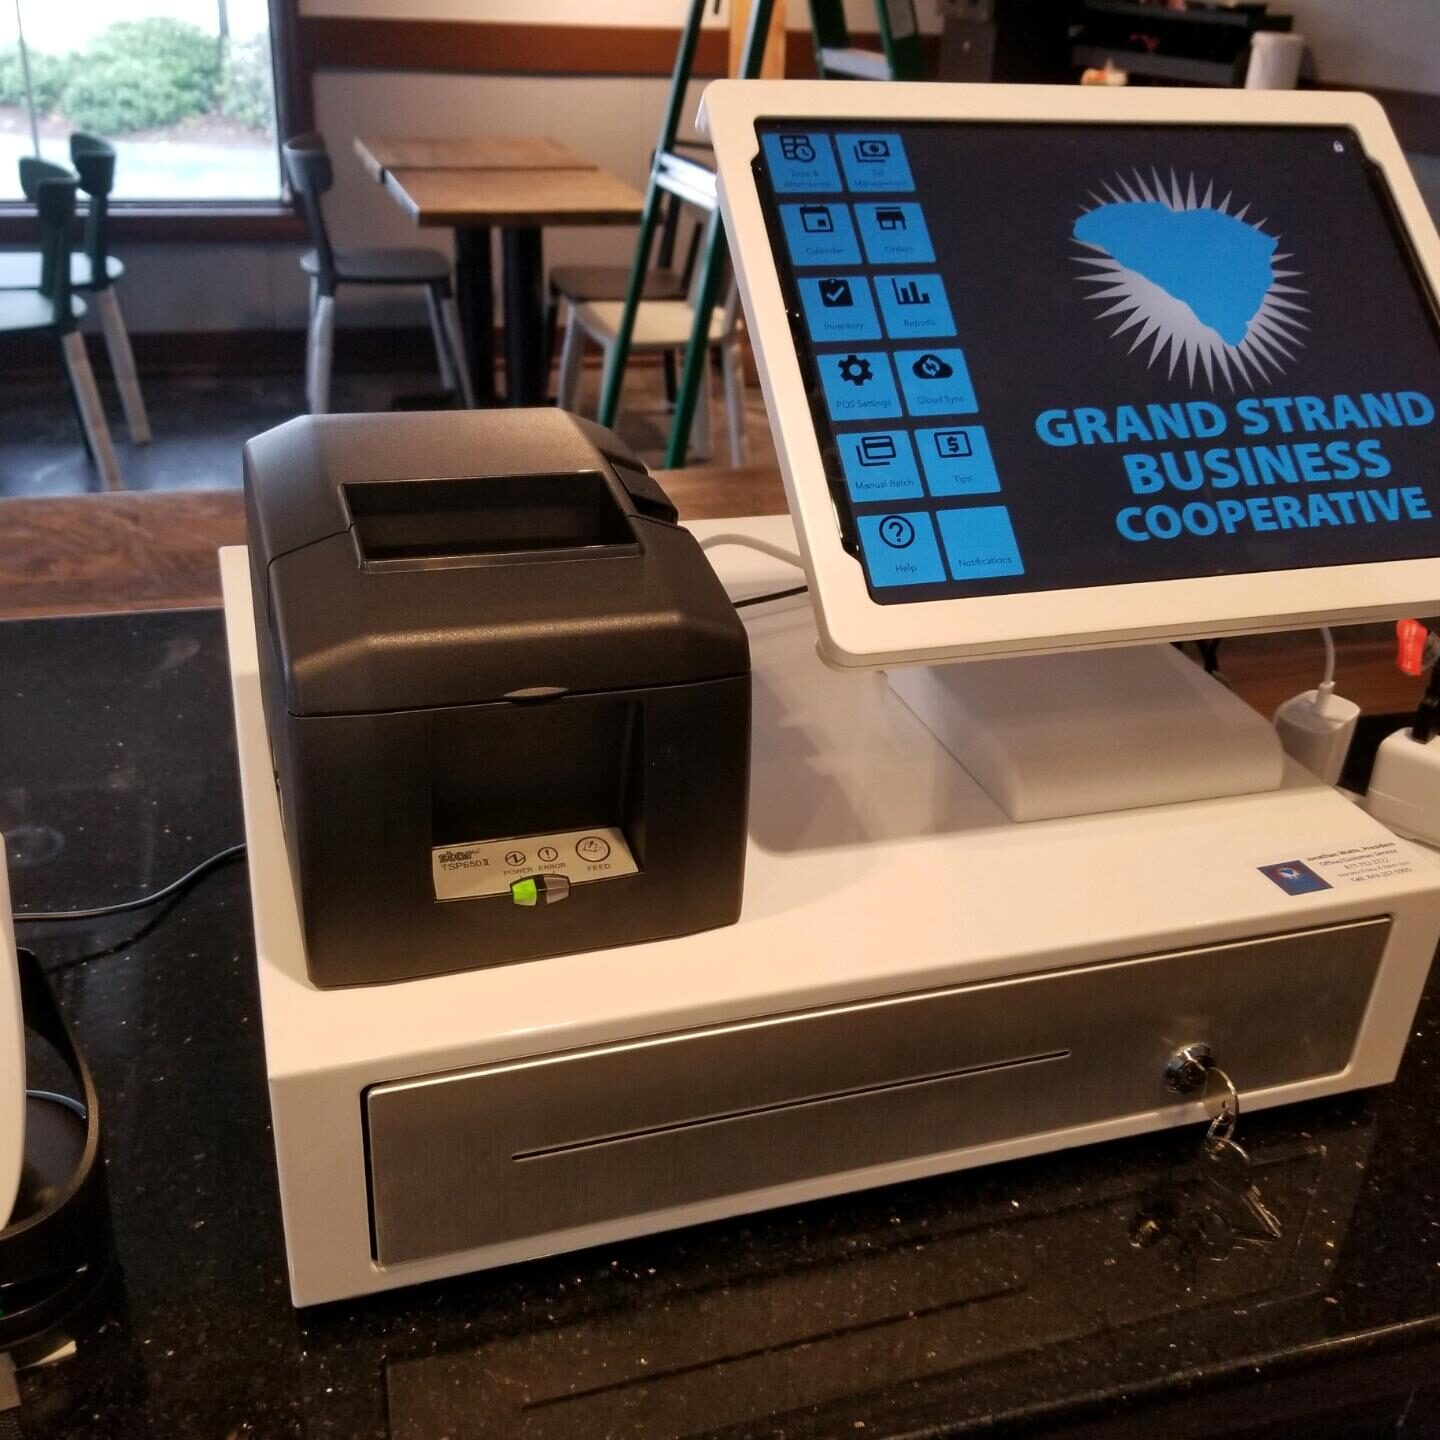 Point of Sale system Register with Receipt Printer, and Barcode Scanner